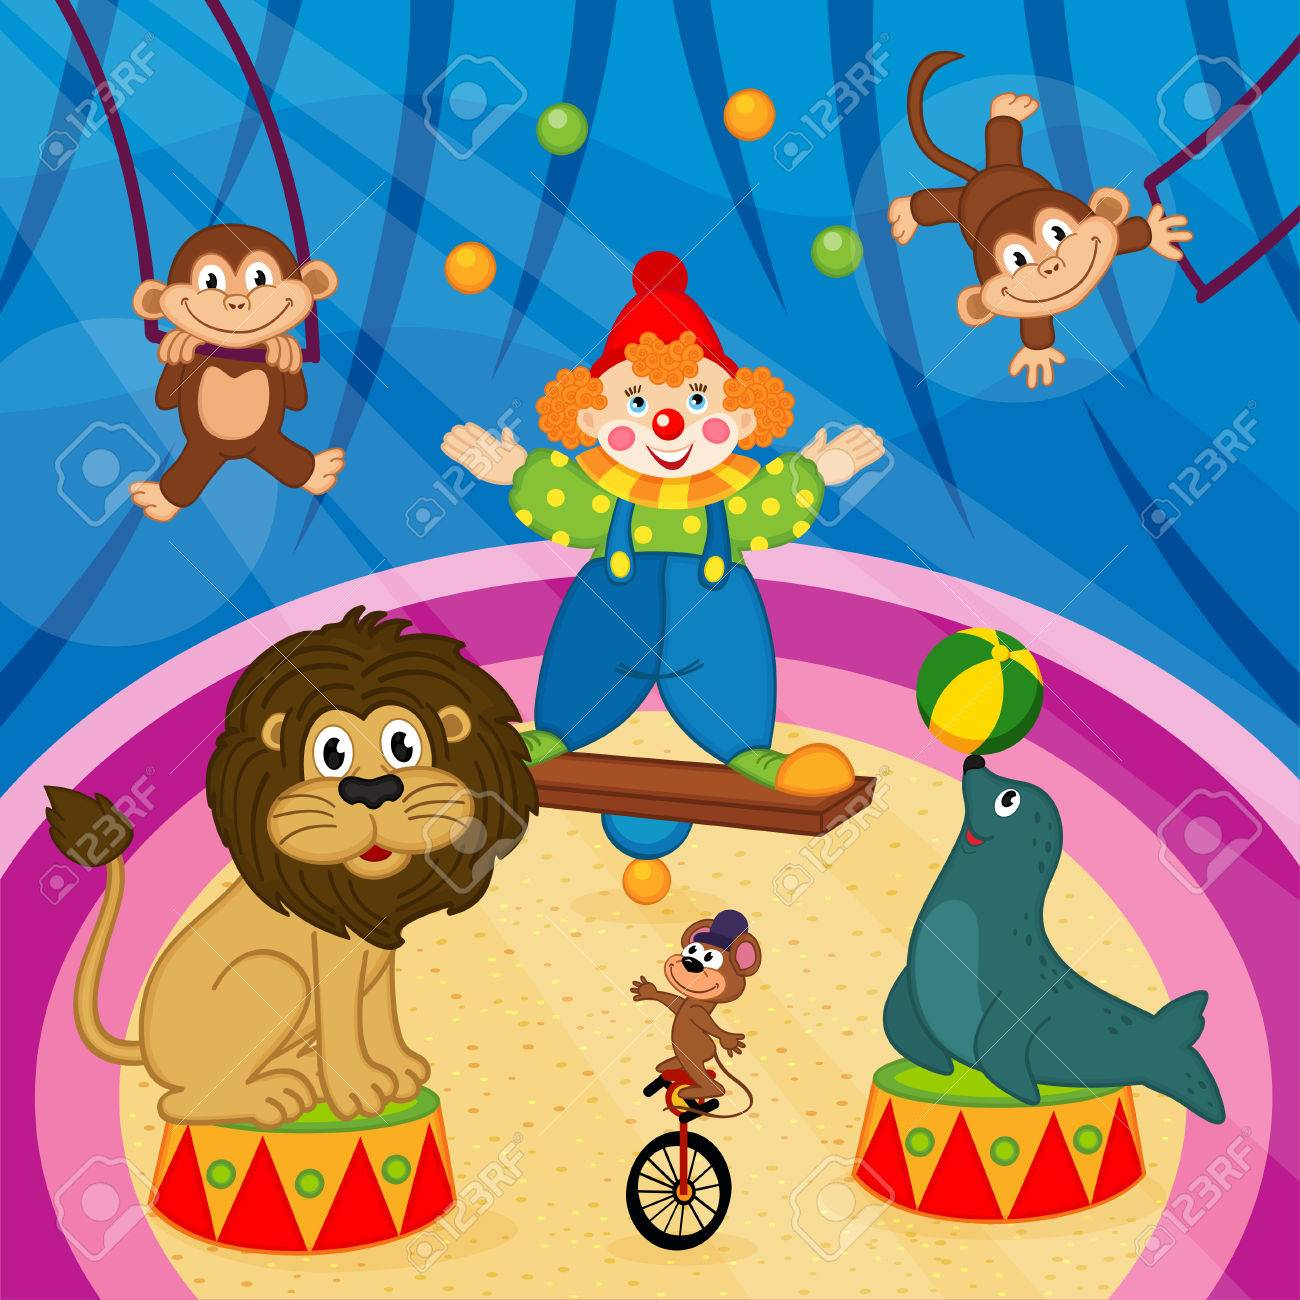 arena in circus with animals and clown - vector illustration - 51039403